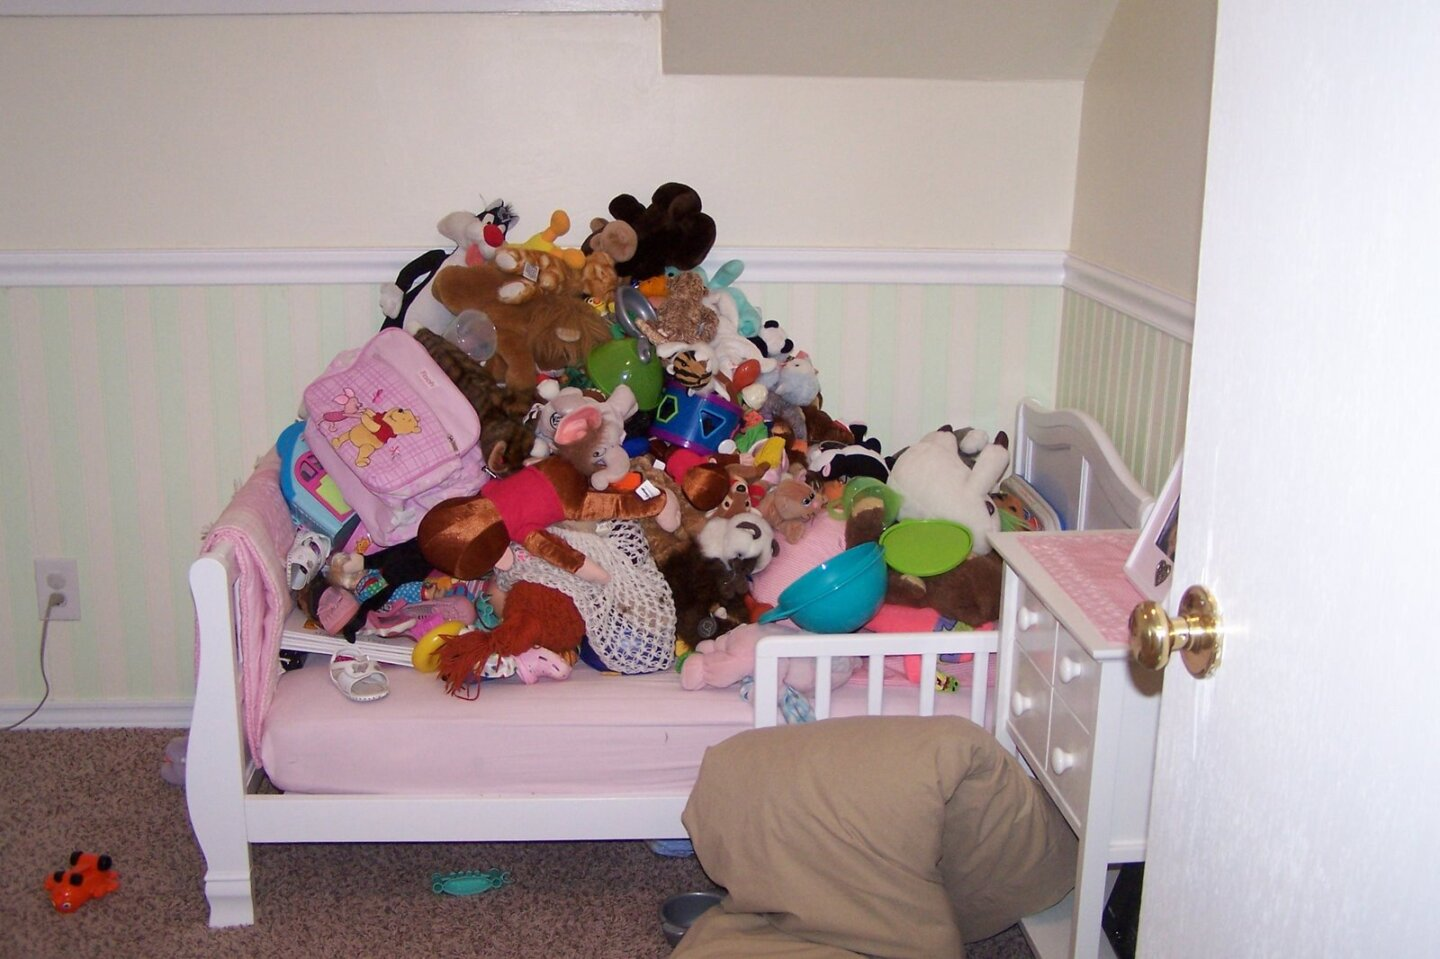 Pile of toys on a toddler bed